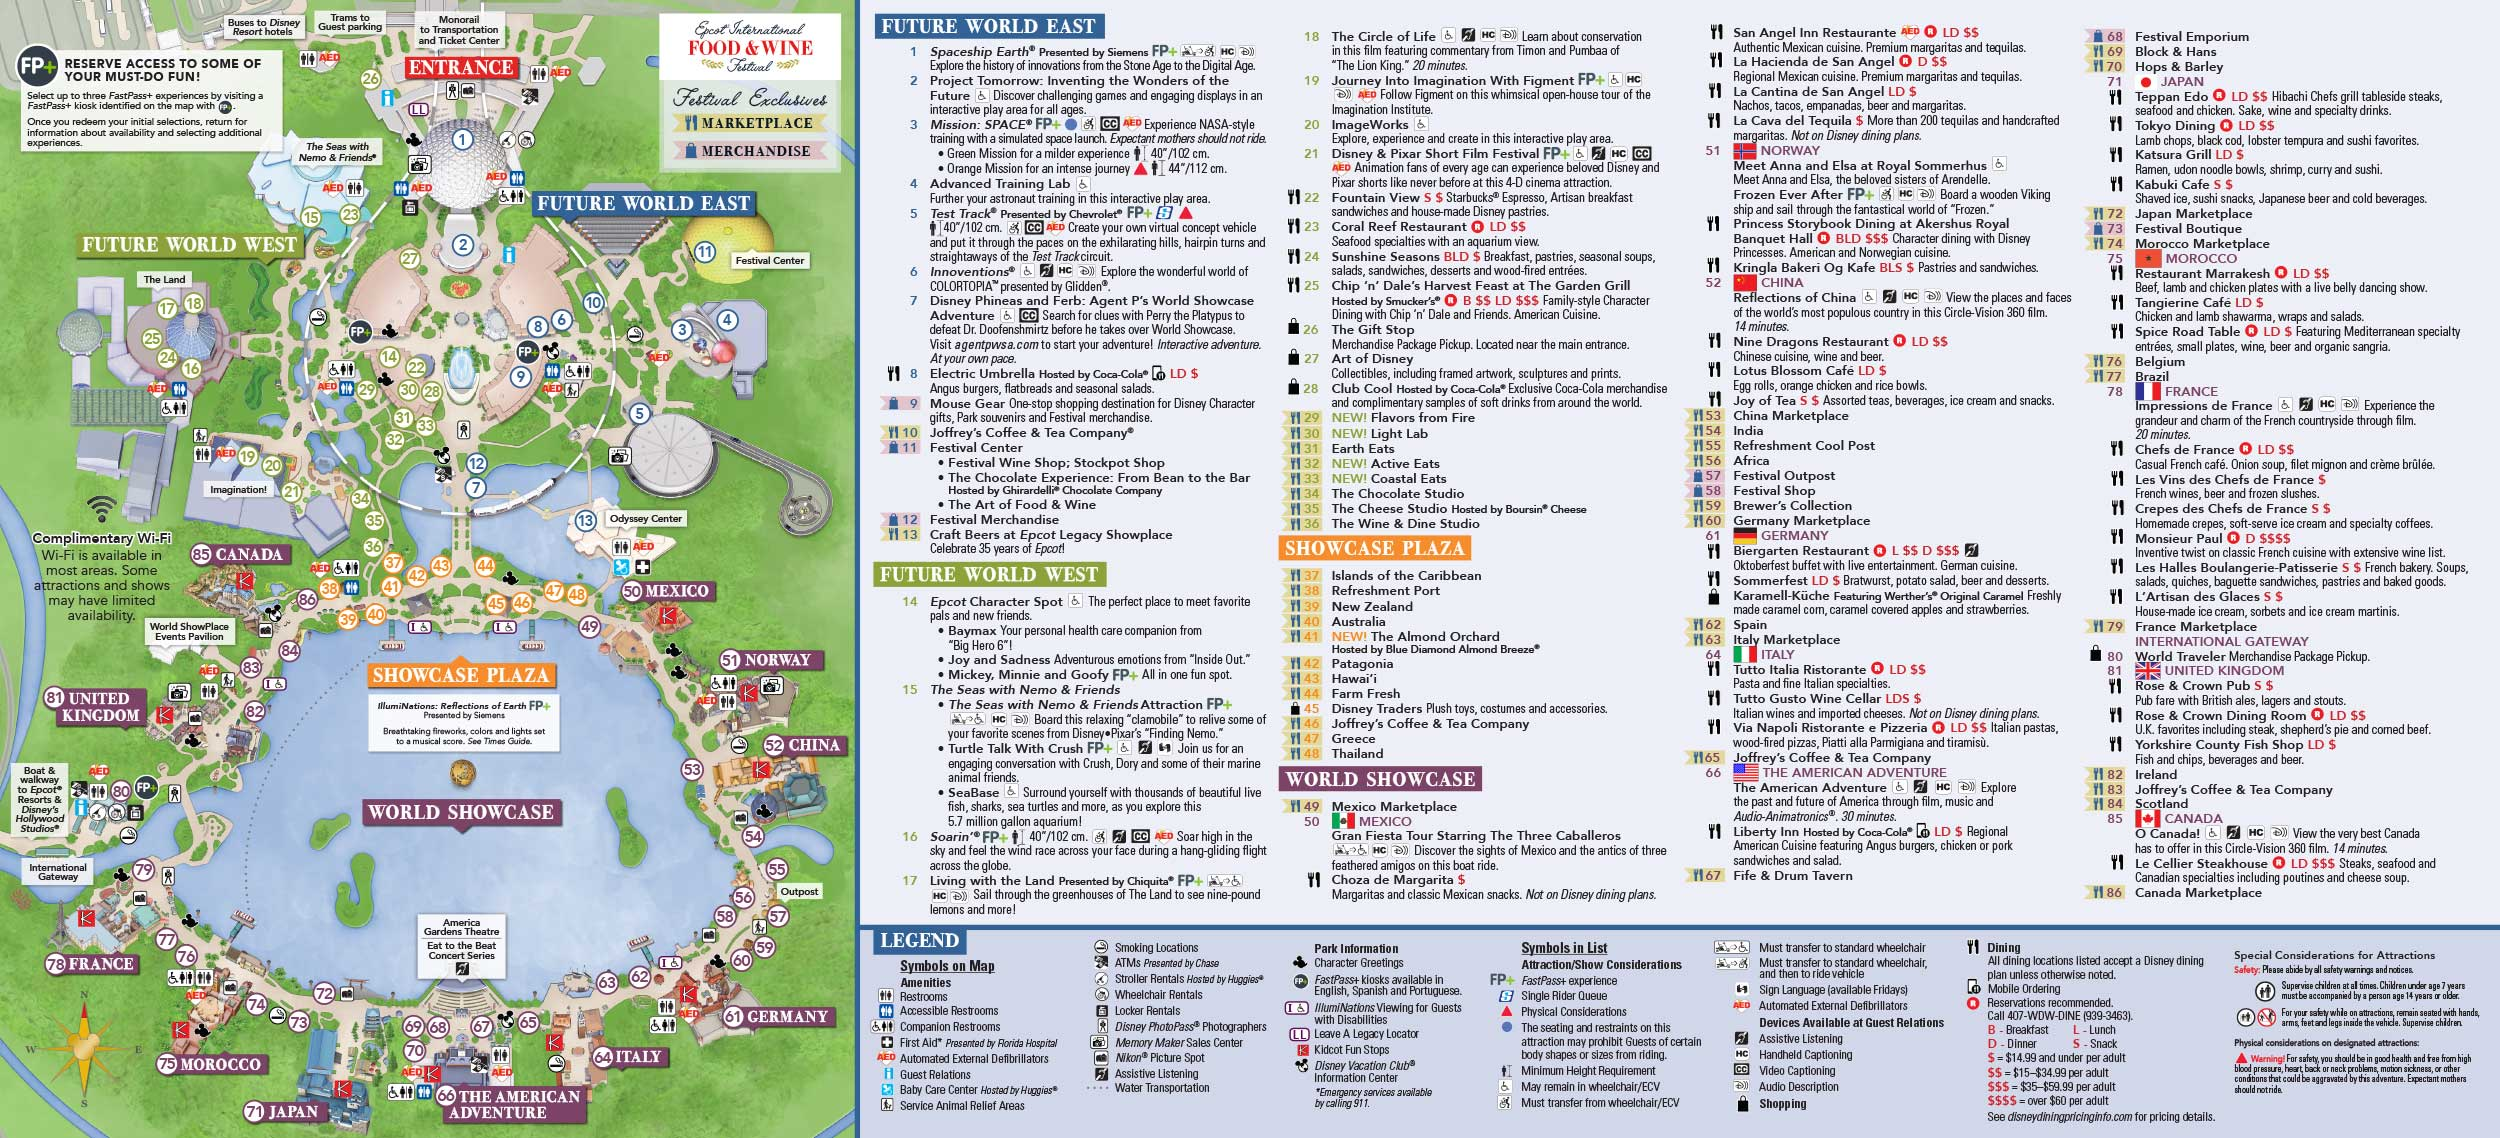 When Is The Food And Wine Festival At Epcot